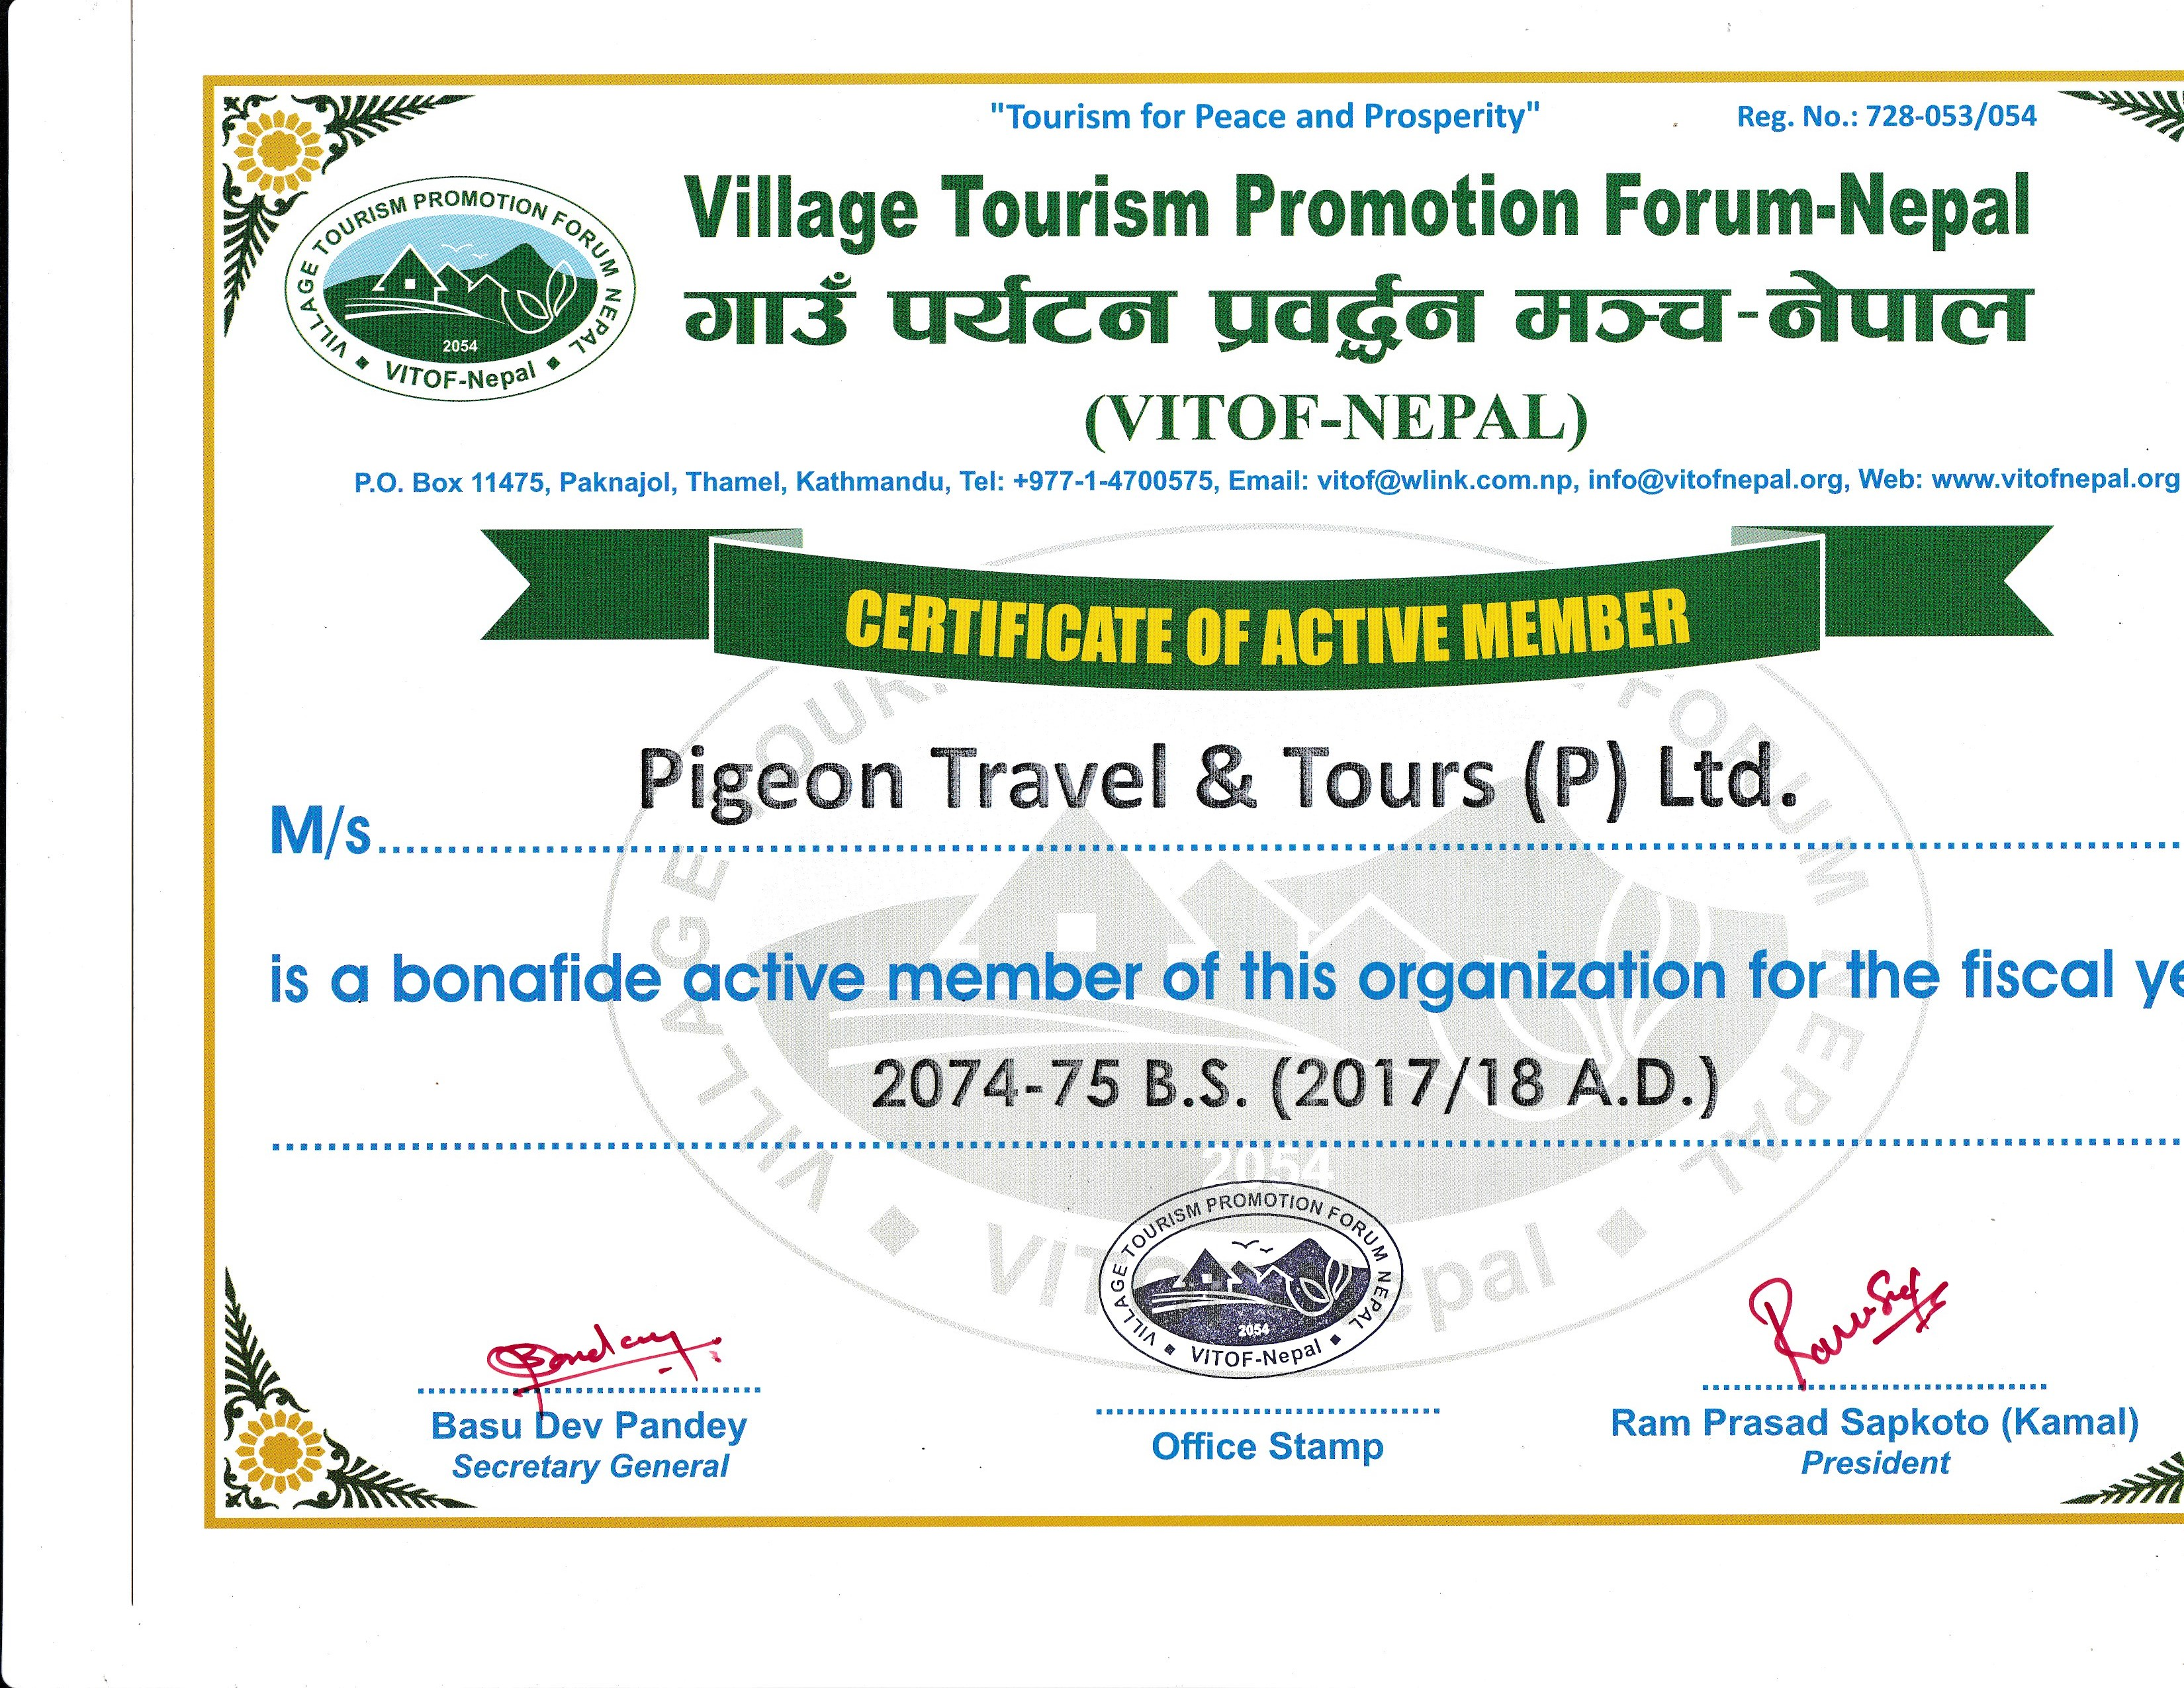 Member Certificate from Village Tourism Promotion Forum